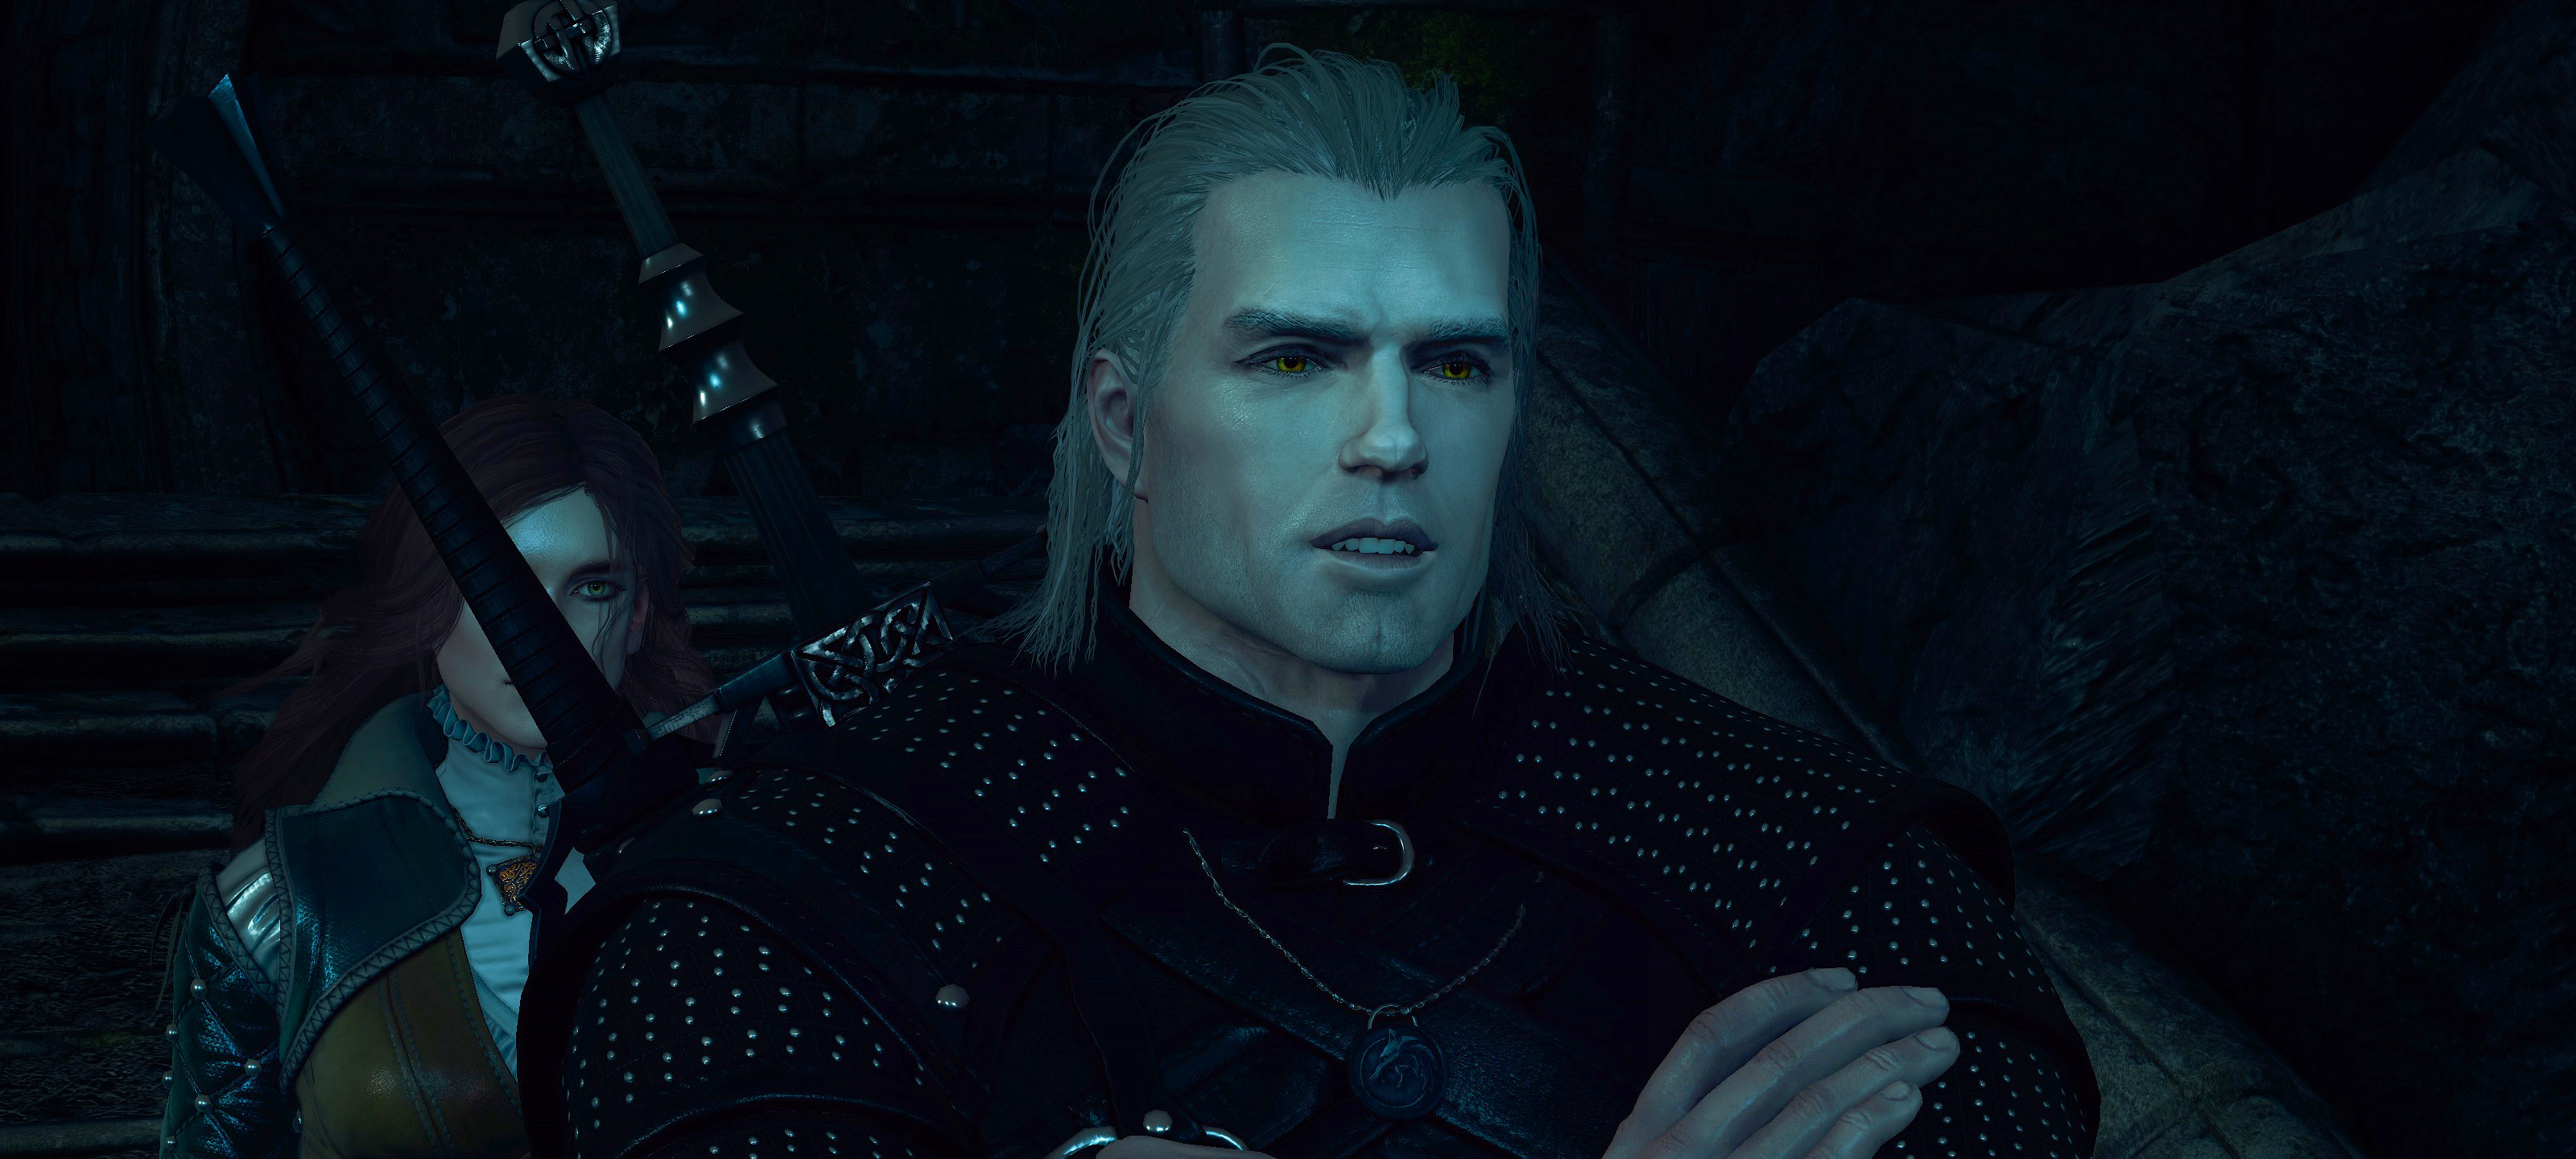 Witcher 3 Mod Replaces Geralt With Henry Cavill Alienware